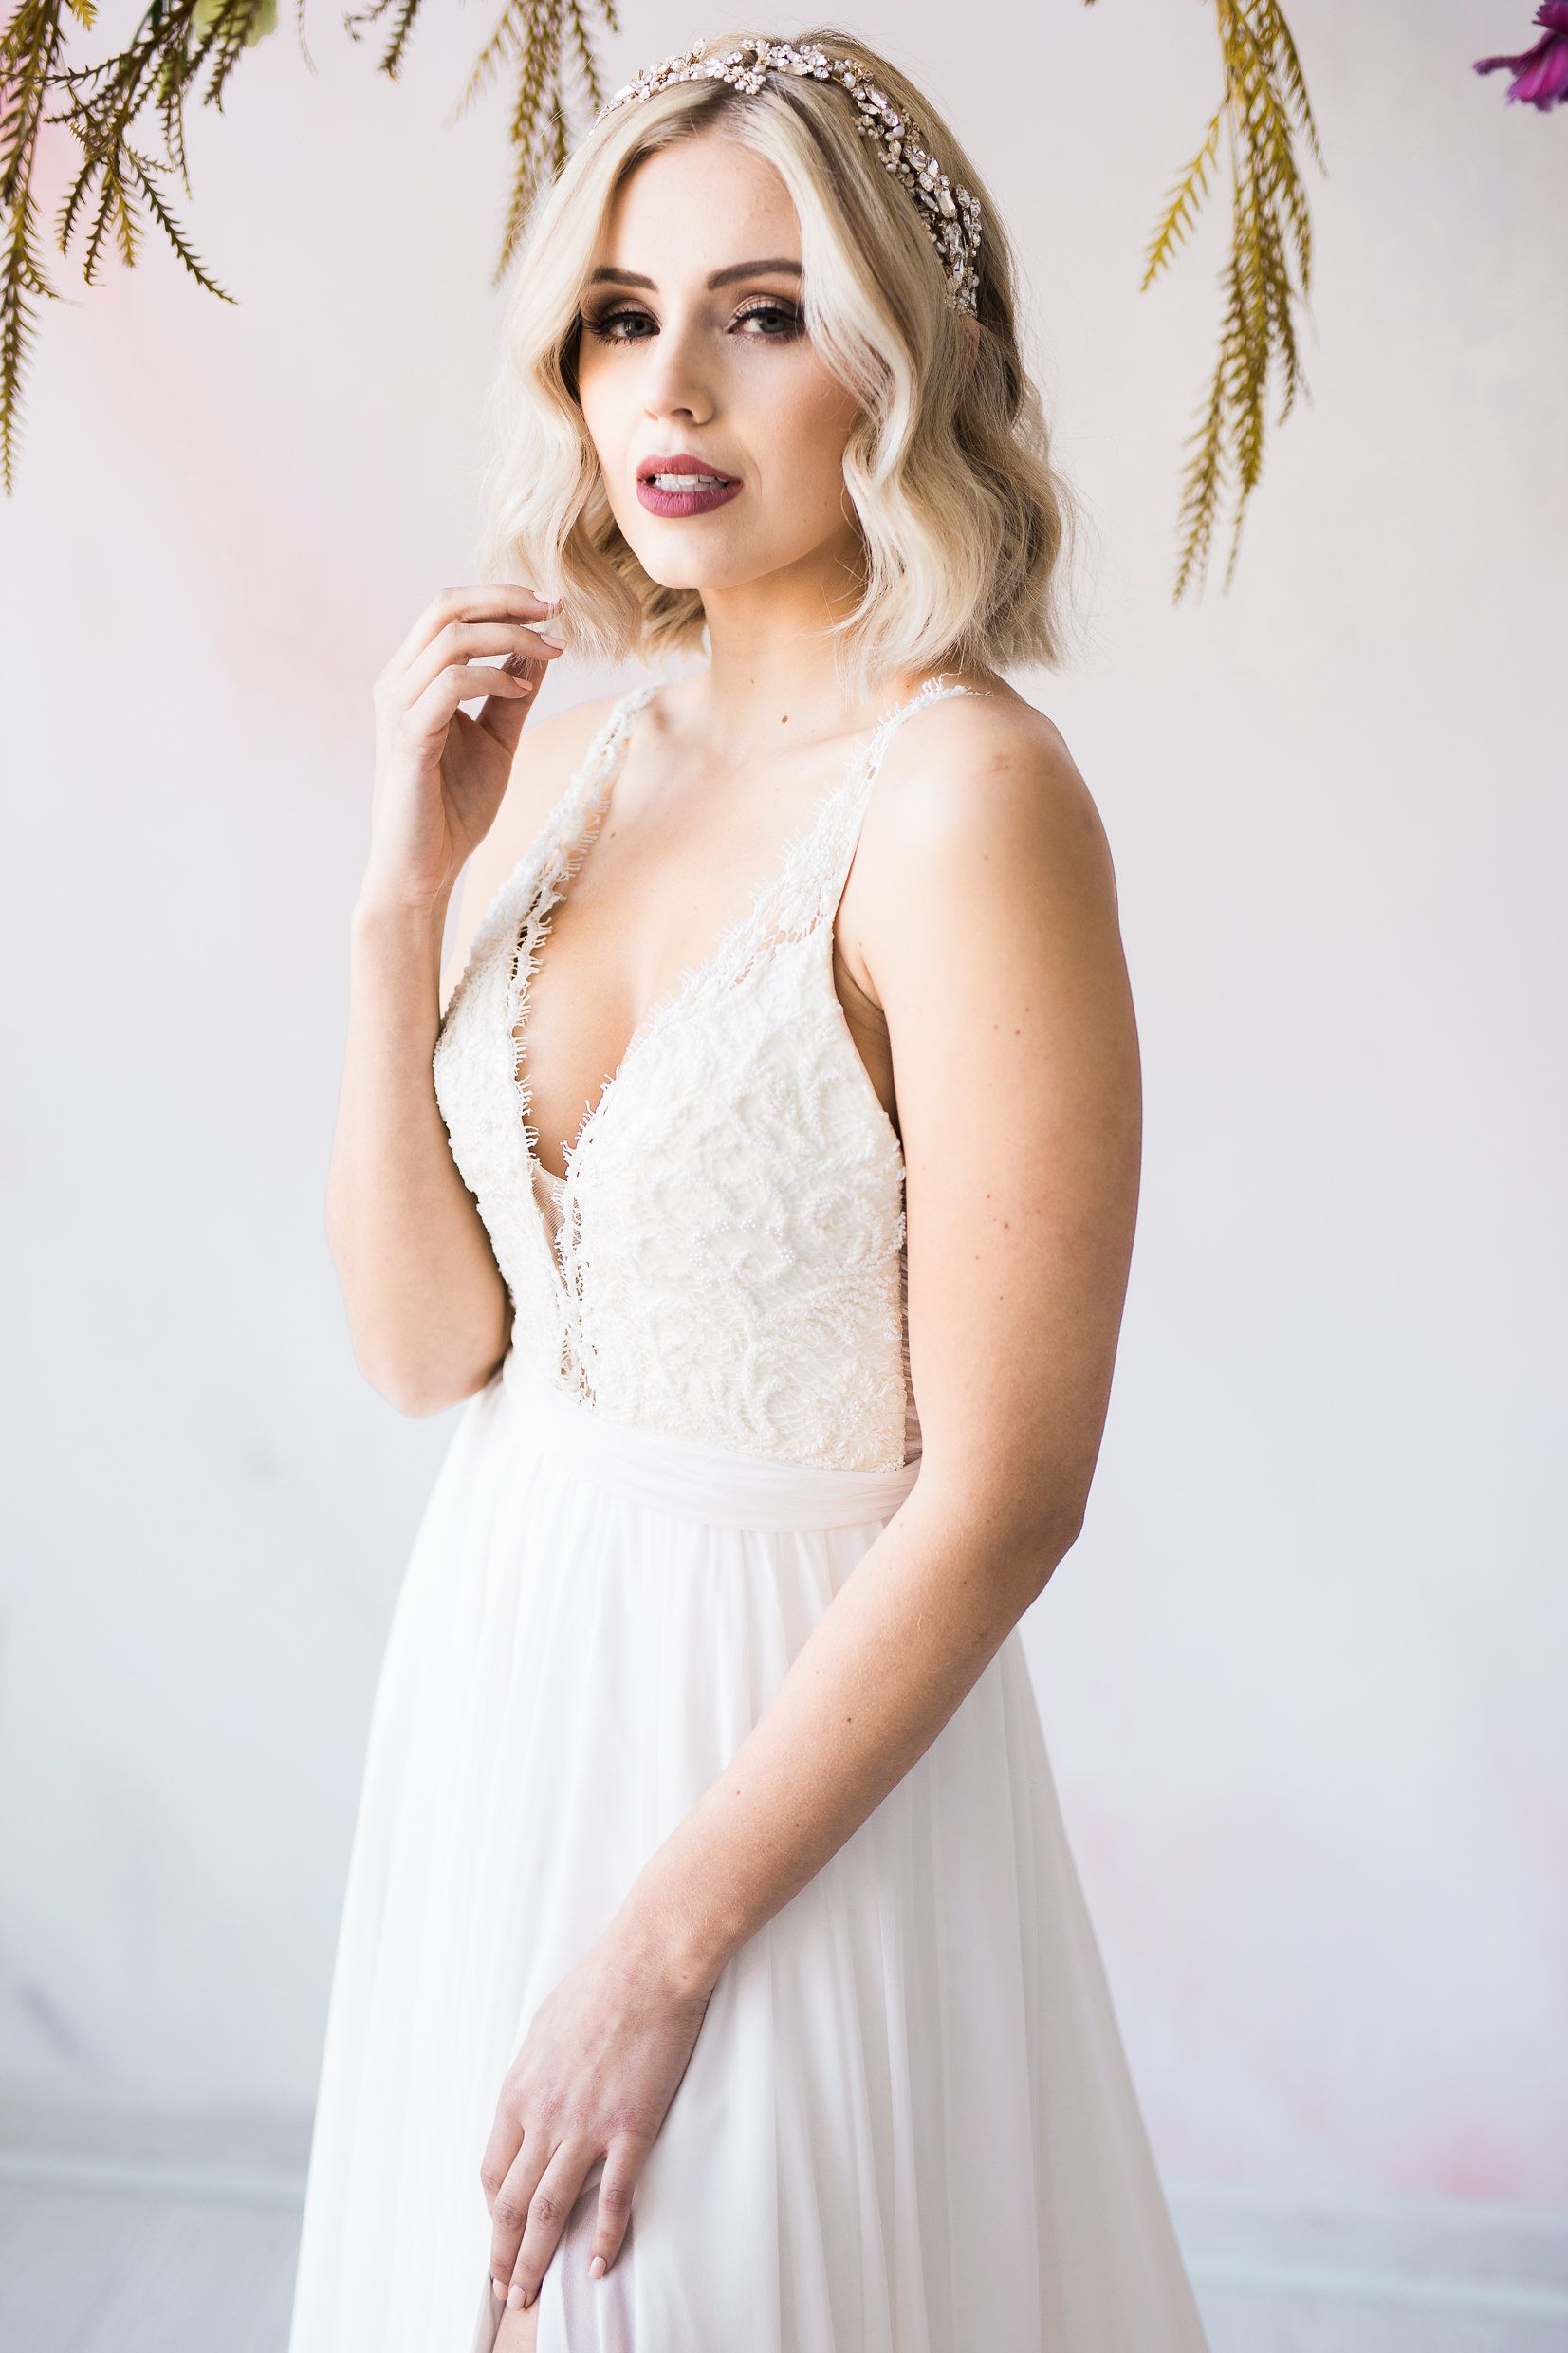 Kim Gown By Truvelle Photography Jim Chiesa Photography Florals